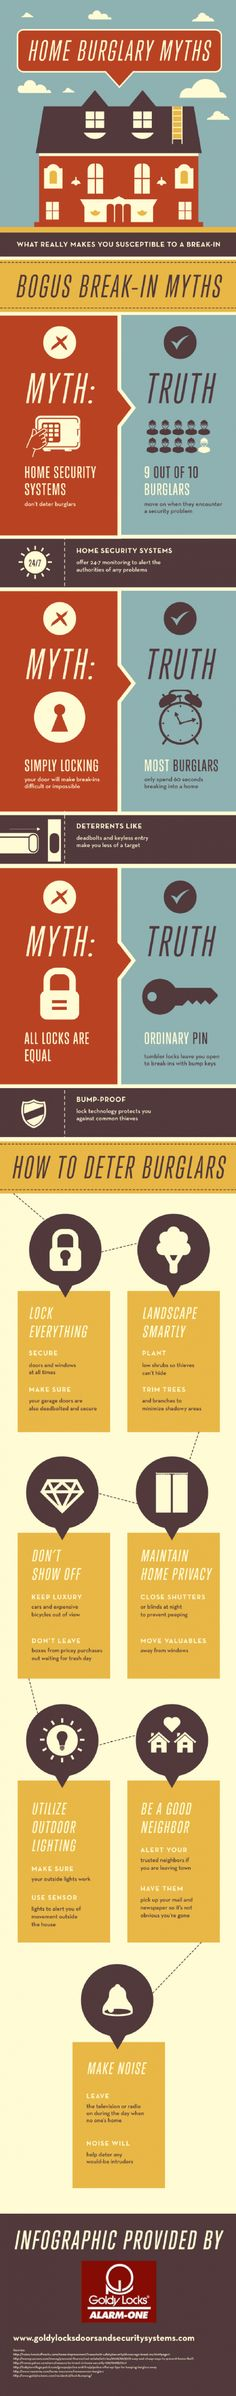 Home Burglary Myths: What Really Makes You Susceptible to a Break-In Infographic